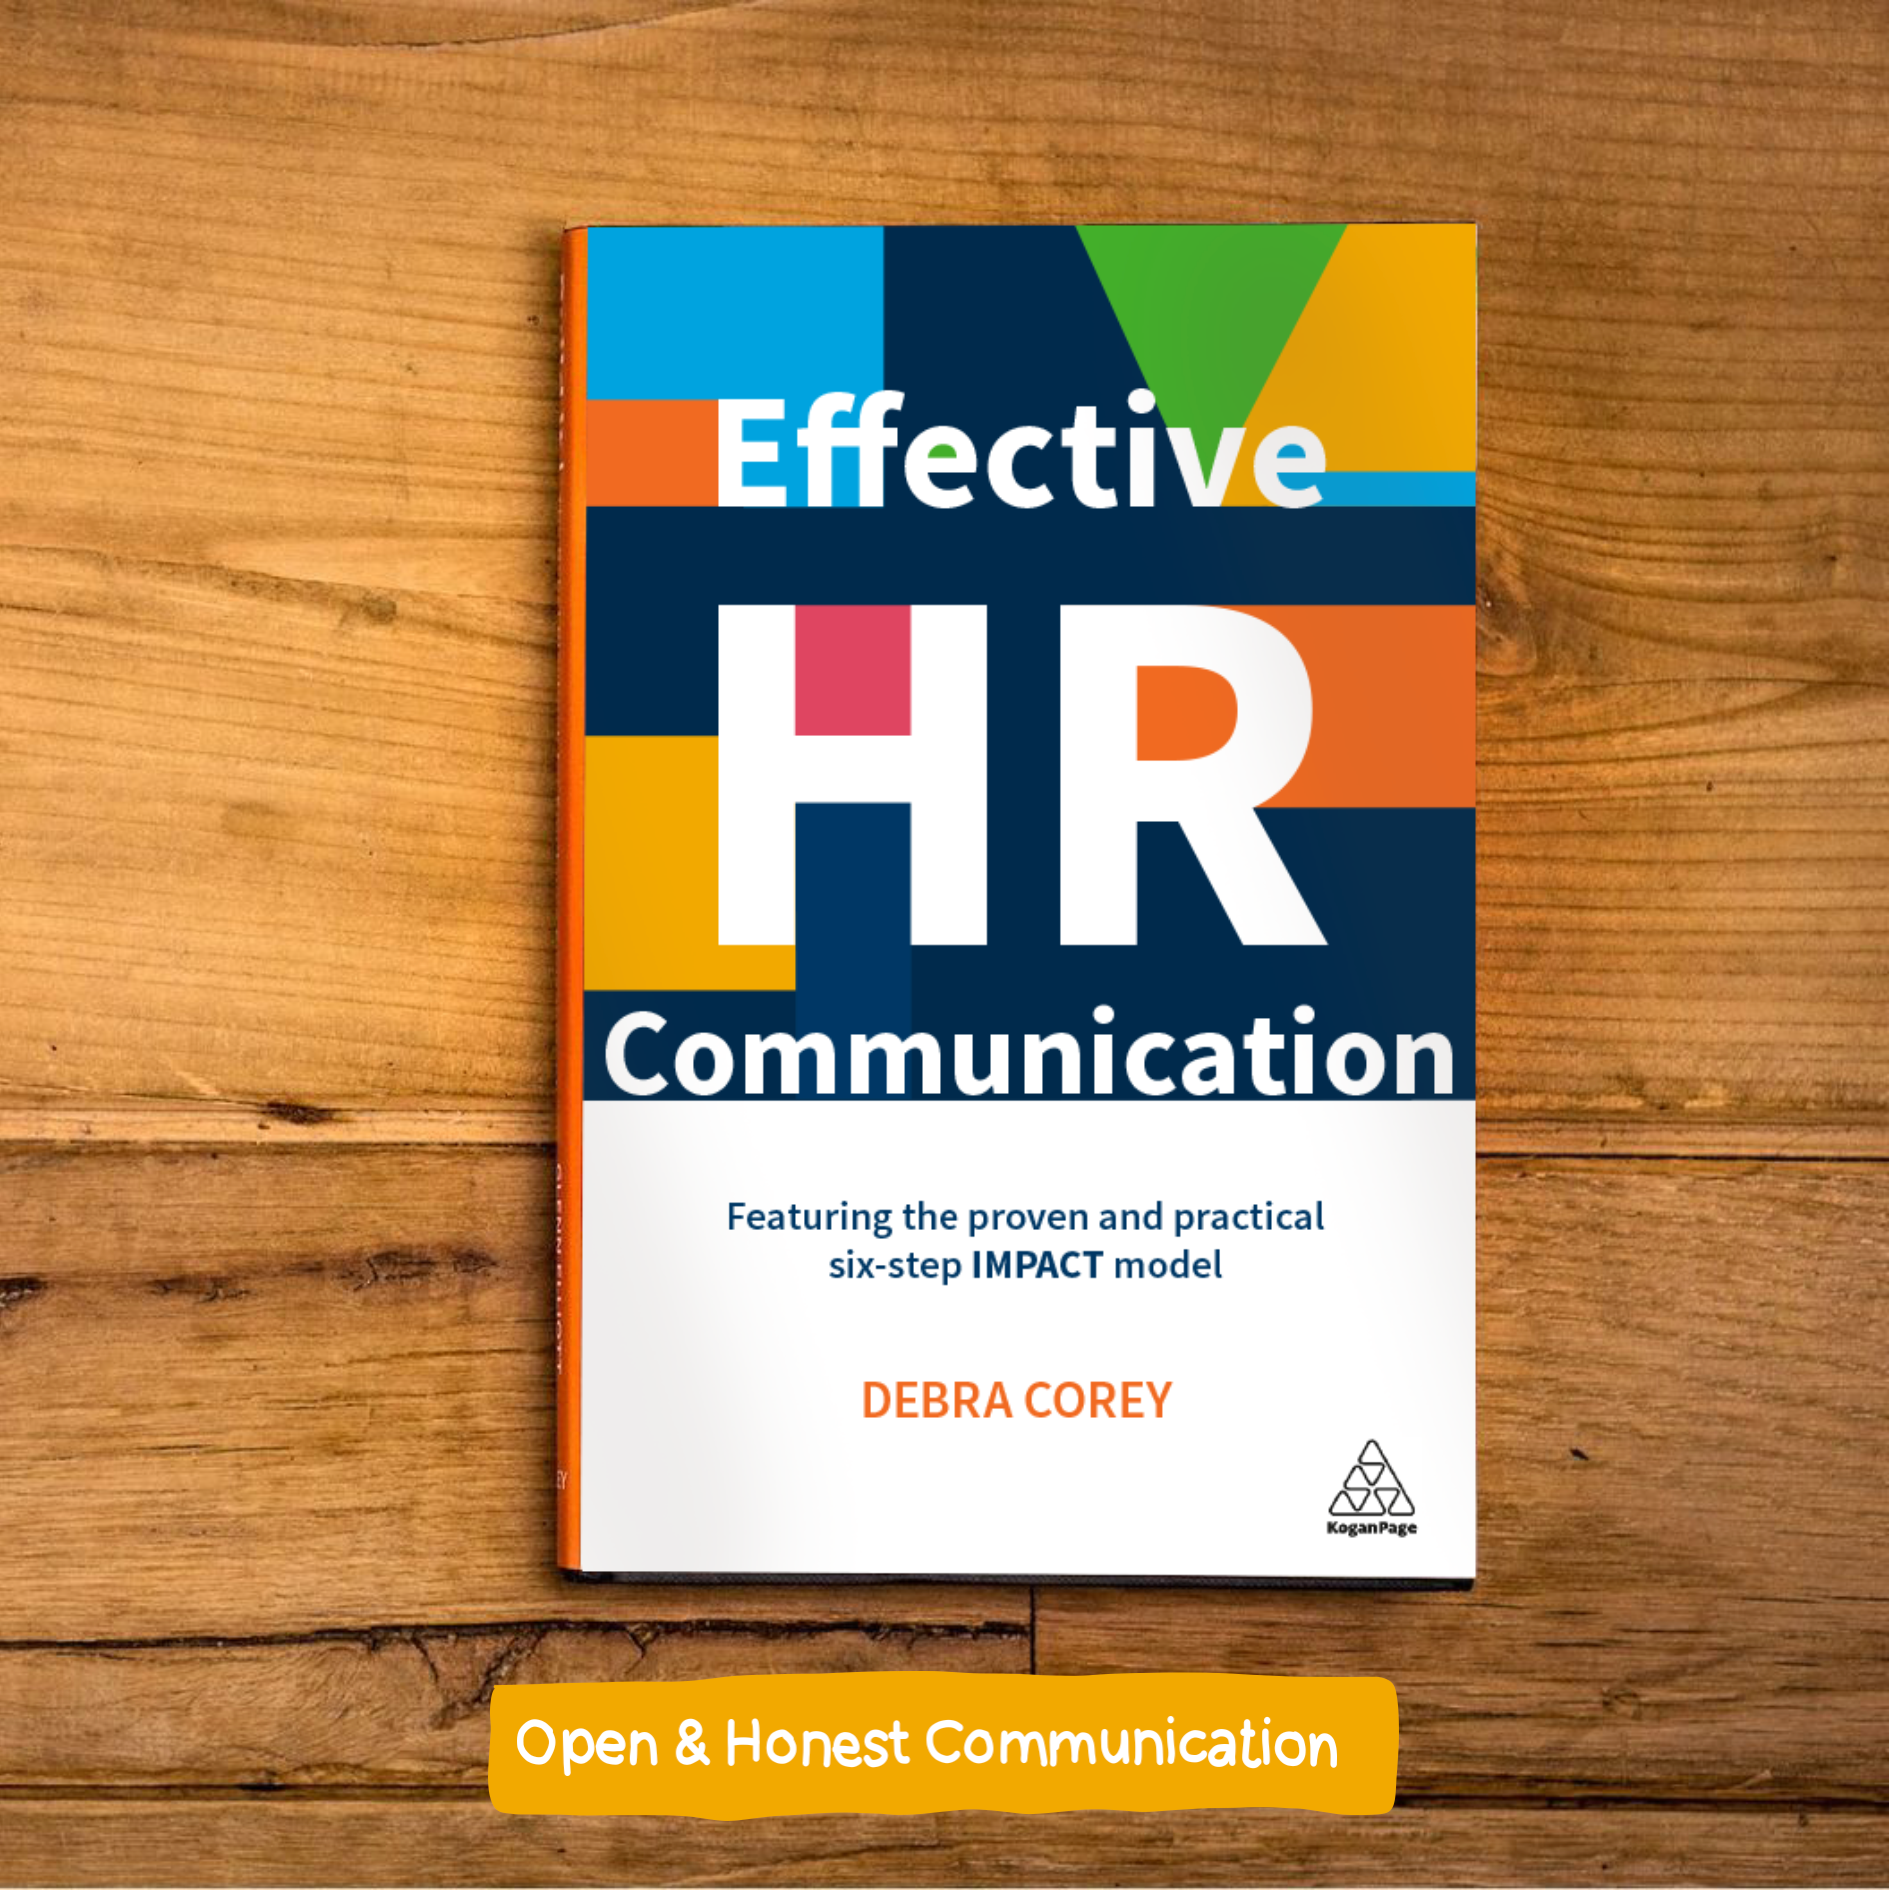 Effective HR Communication by Debra Corey